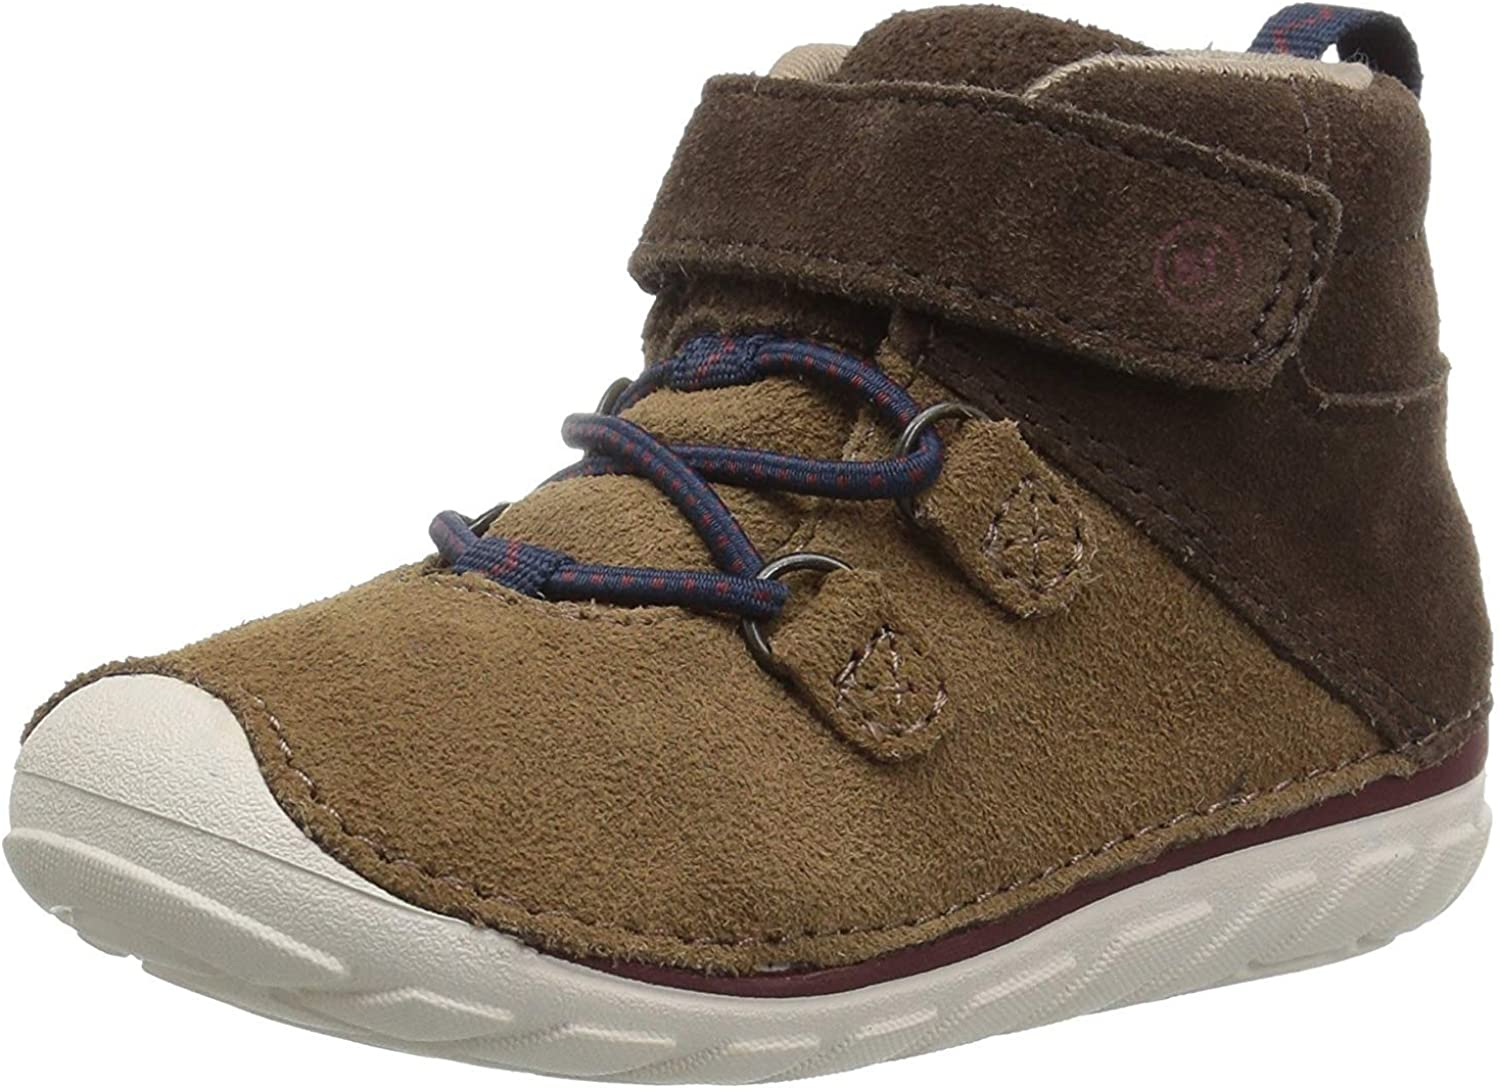 Stride Rite New York Mall Soft Motion Baby and Toddler Boys Ranking TOP13 Boo Oliver Fashion